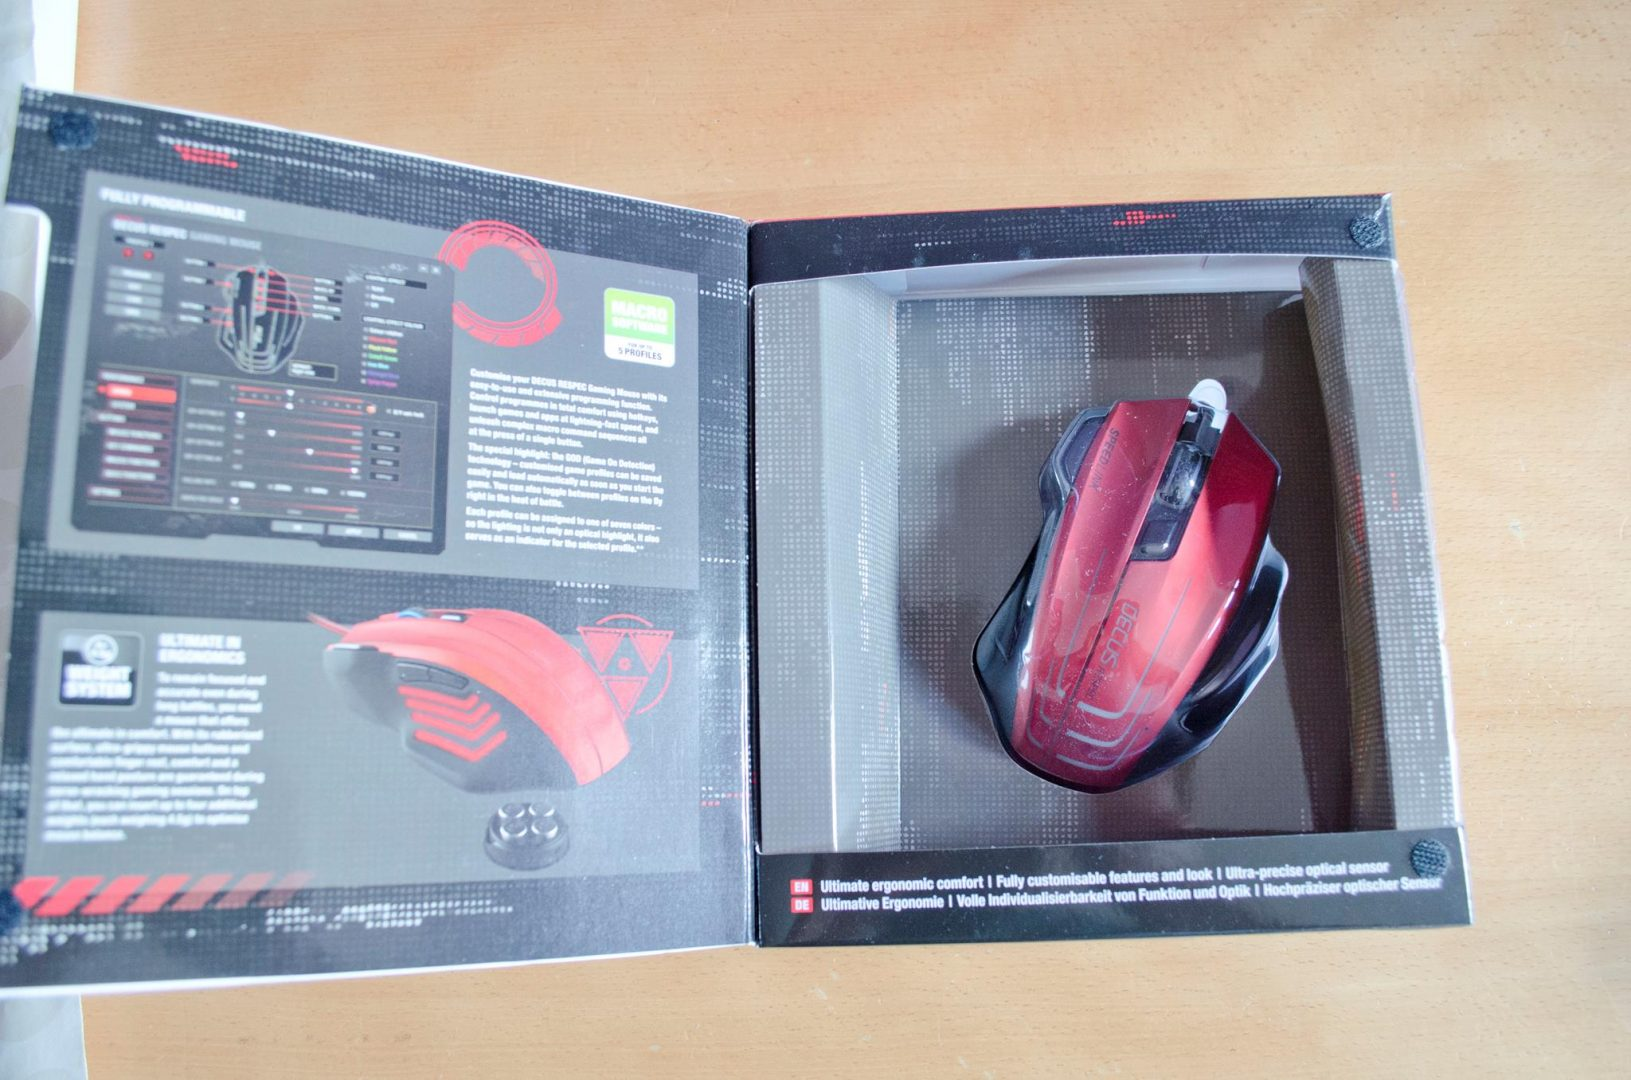 speedlink decus respec gaming mouse review_11